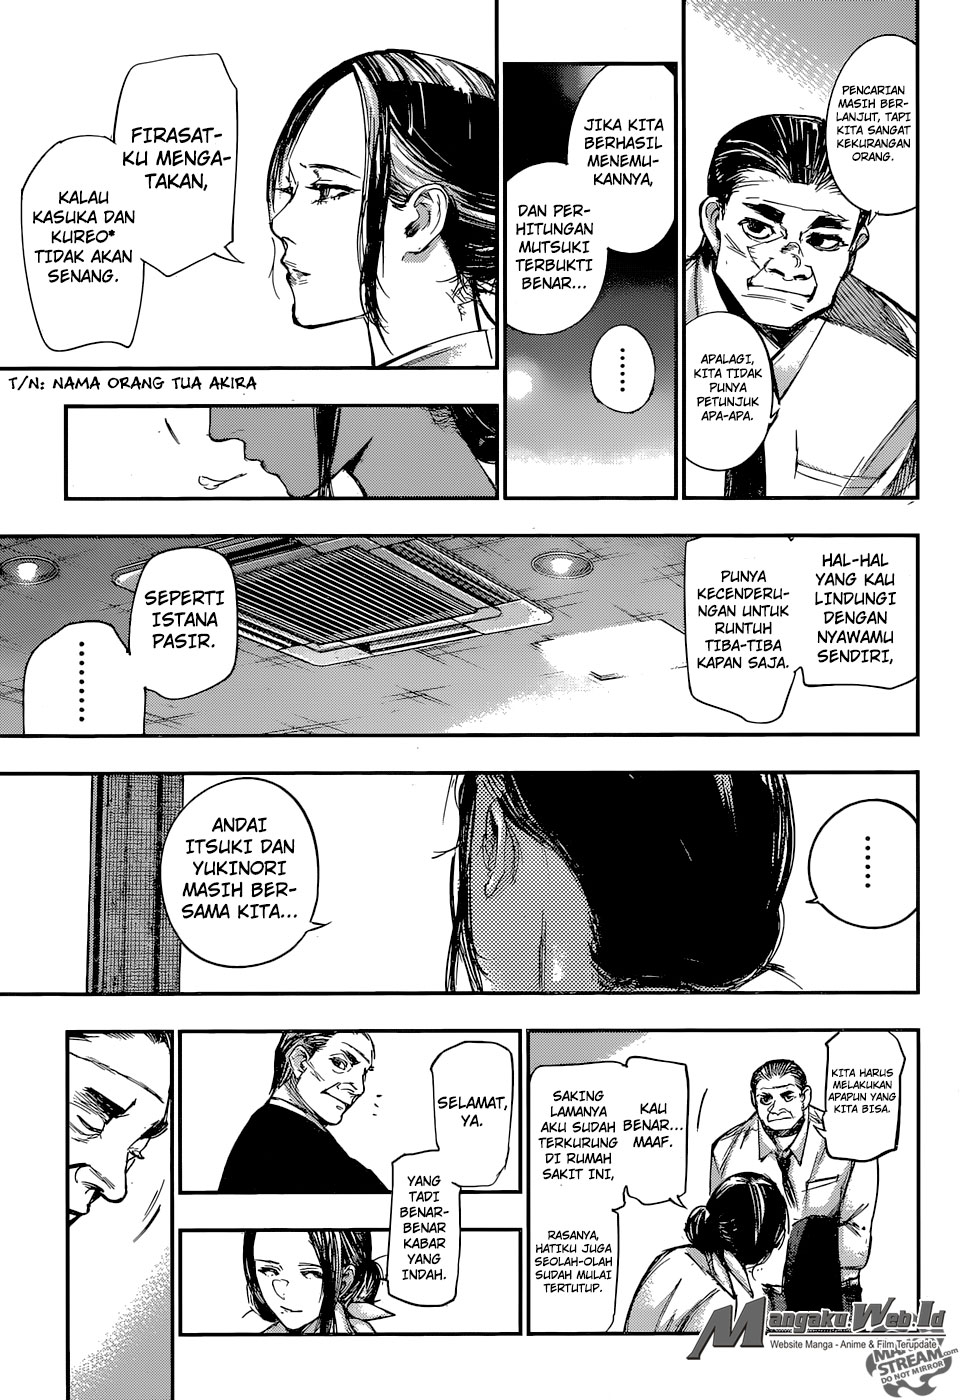 Tokyo Ghoul:re Chapter 104-5